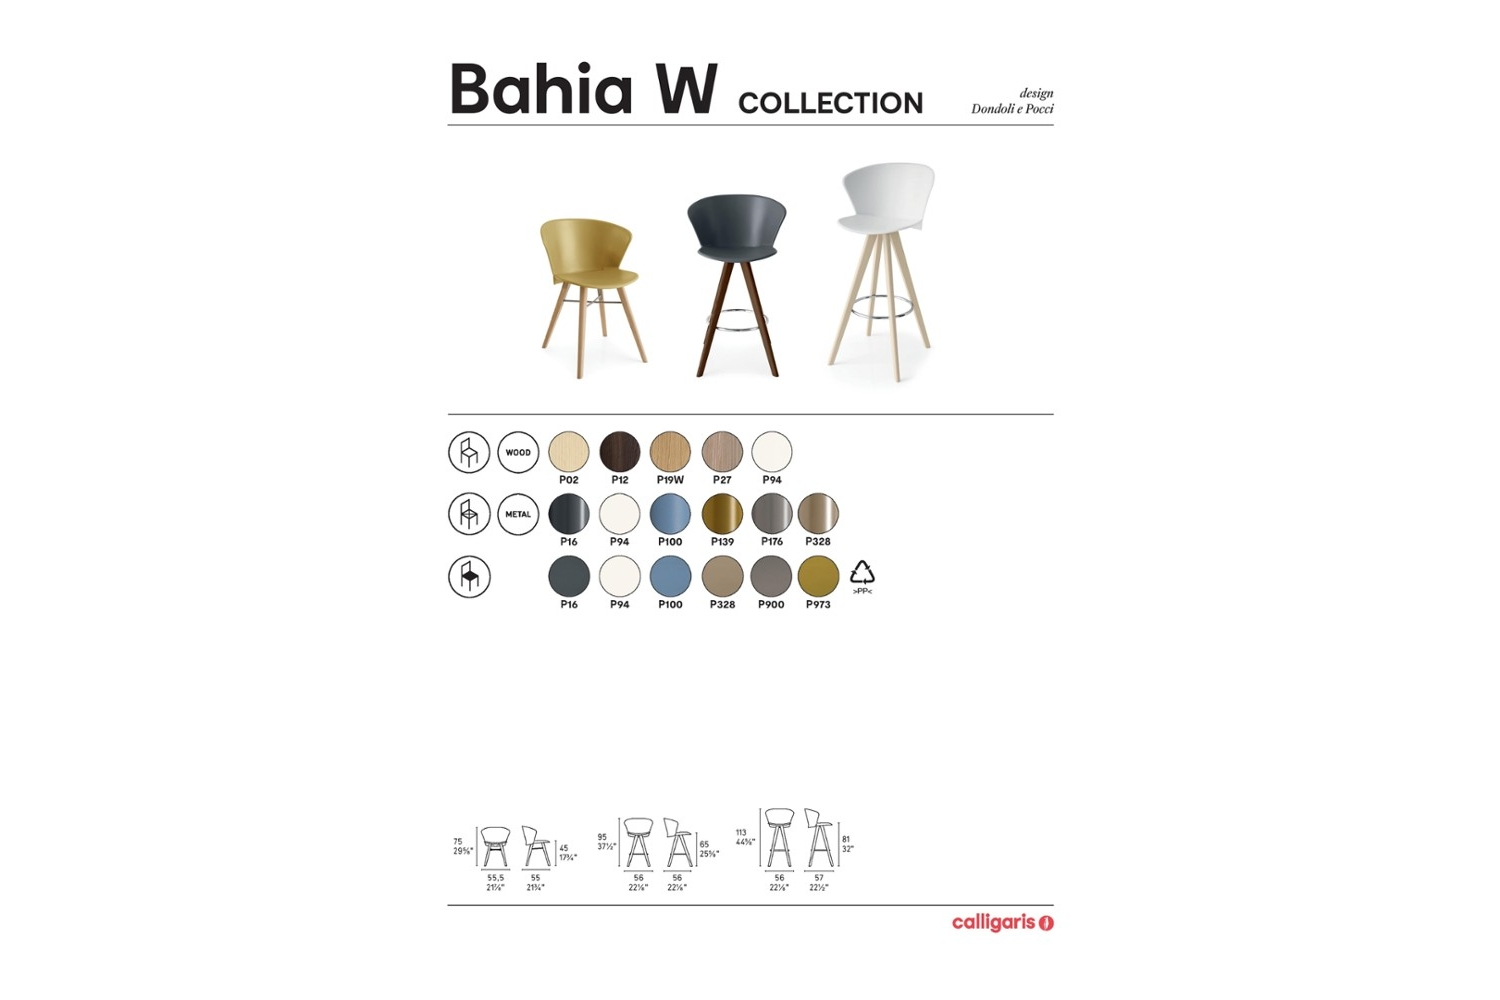 Schematic Bahia W Collection 2019 page 001 Schematic Bahia-W_Collection_2019-page-001.jpg Calligaris Schematic